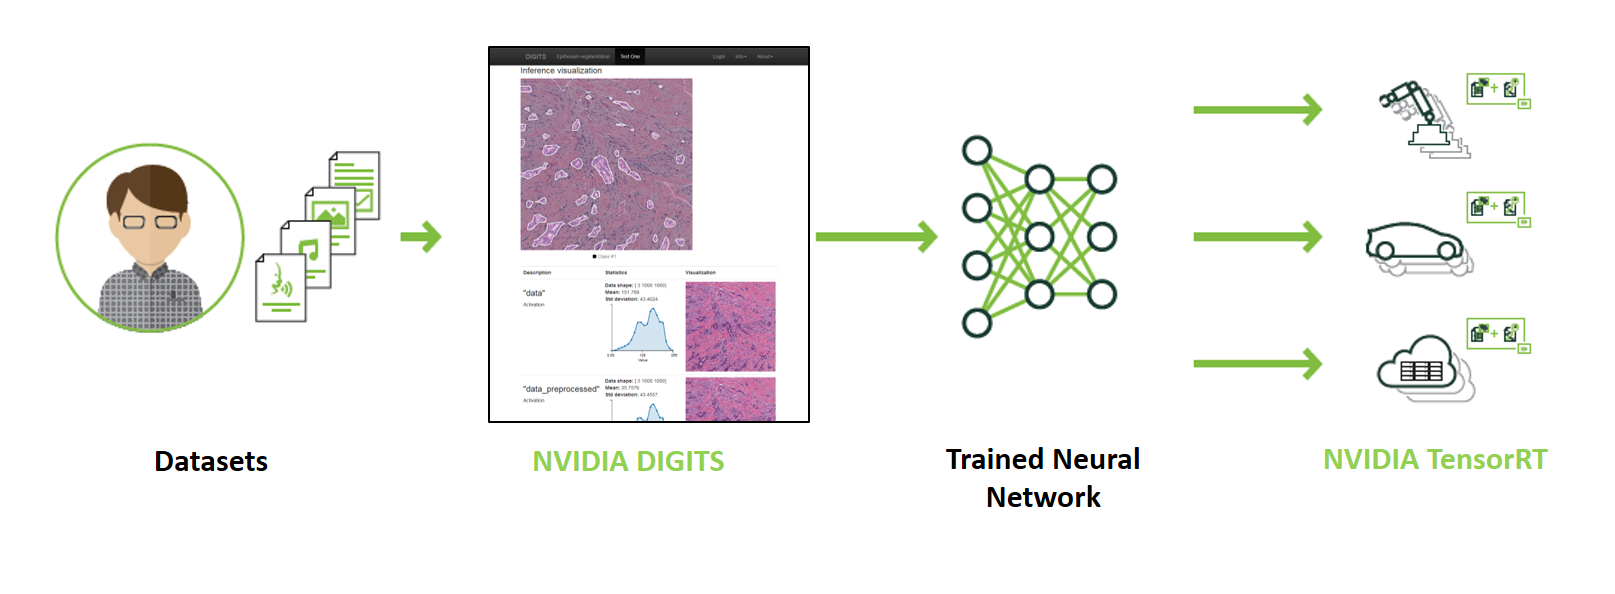 Figure 3: Deep learning training to deployment workflow with NVIDIA DIGITS and Tensor RT.